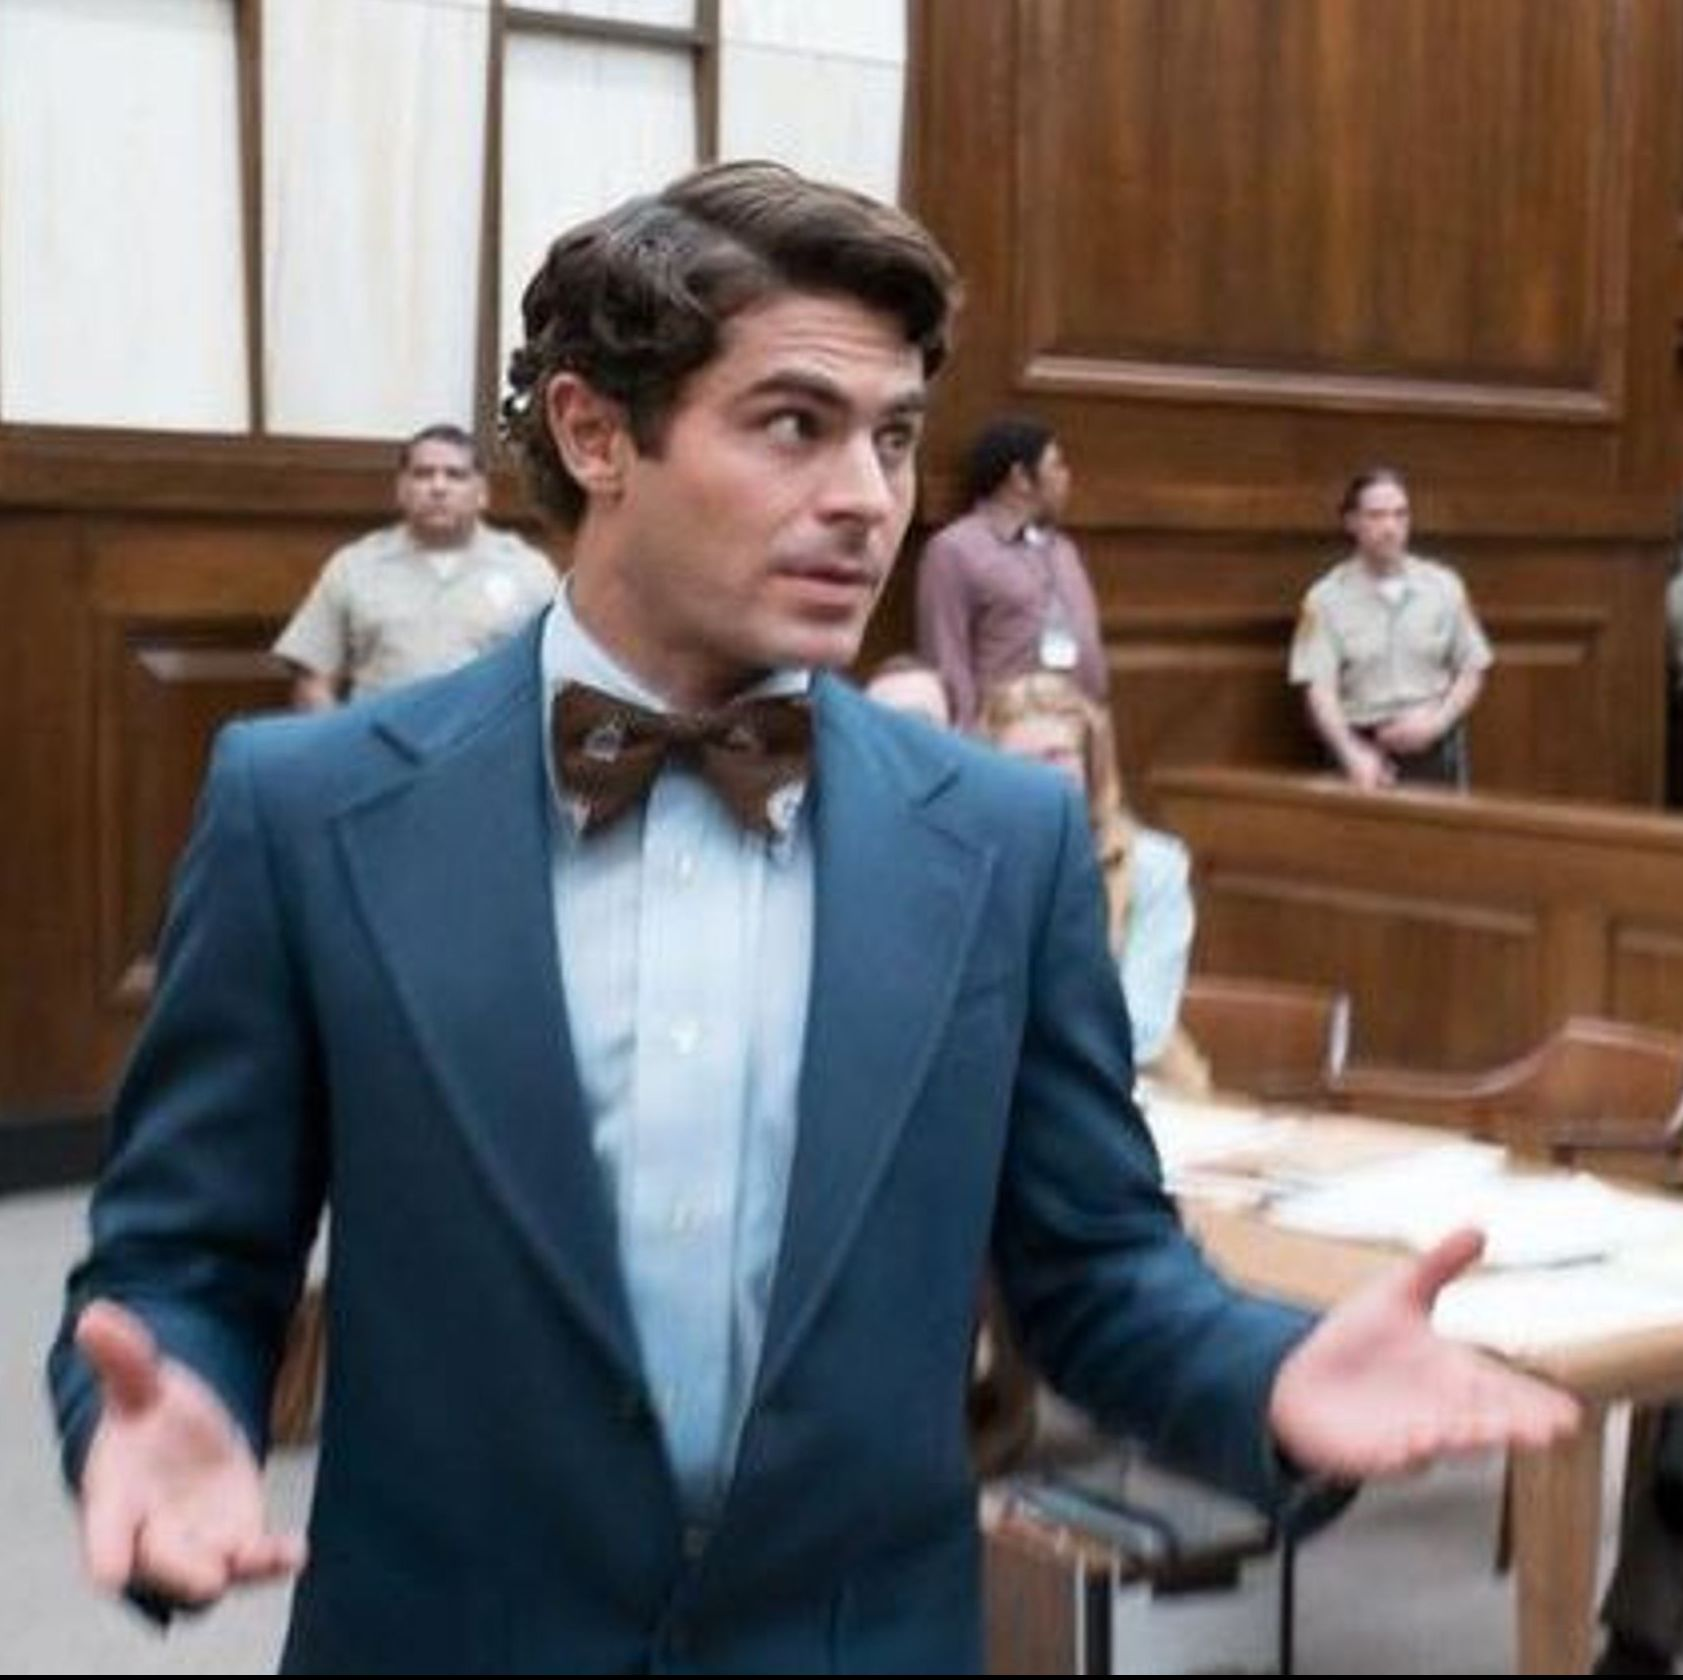 Zac Efron plays Bundy in Netflix's Extremely Wicked, Shockingly Evil and Vile. The killer studied law for a time, and represented himself in court.